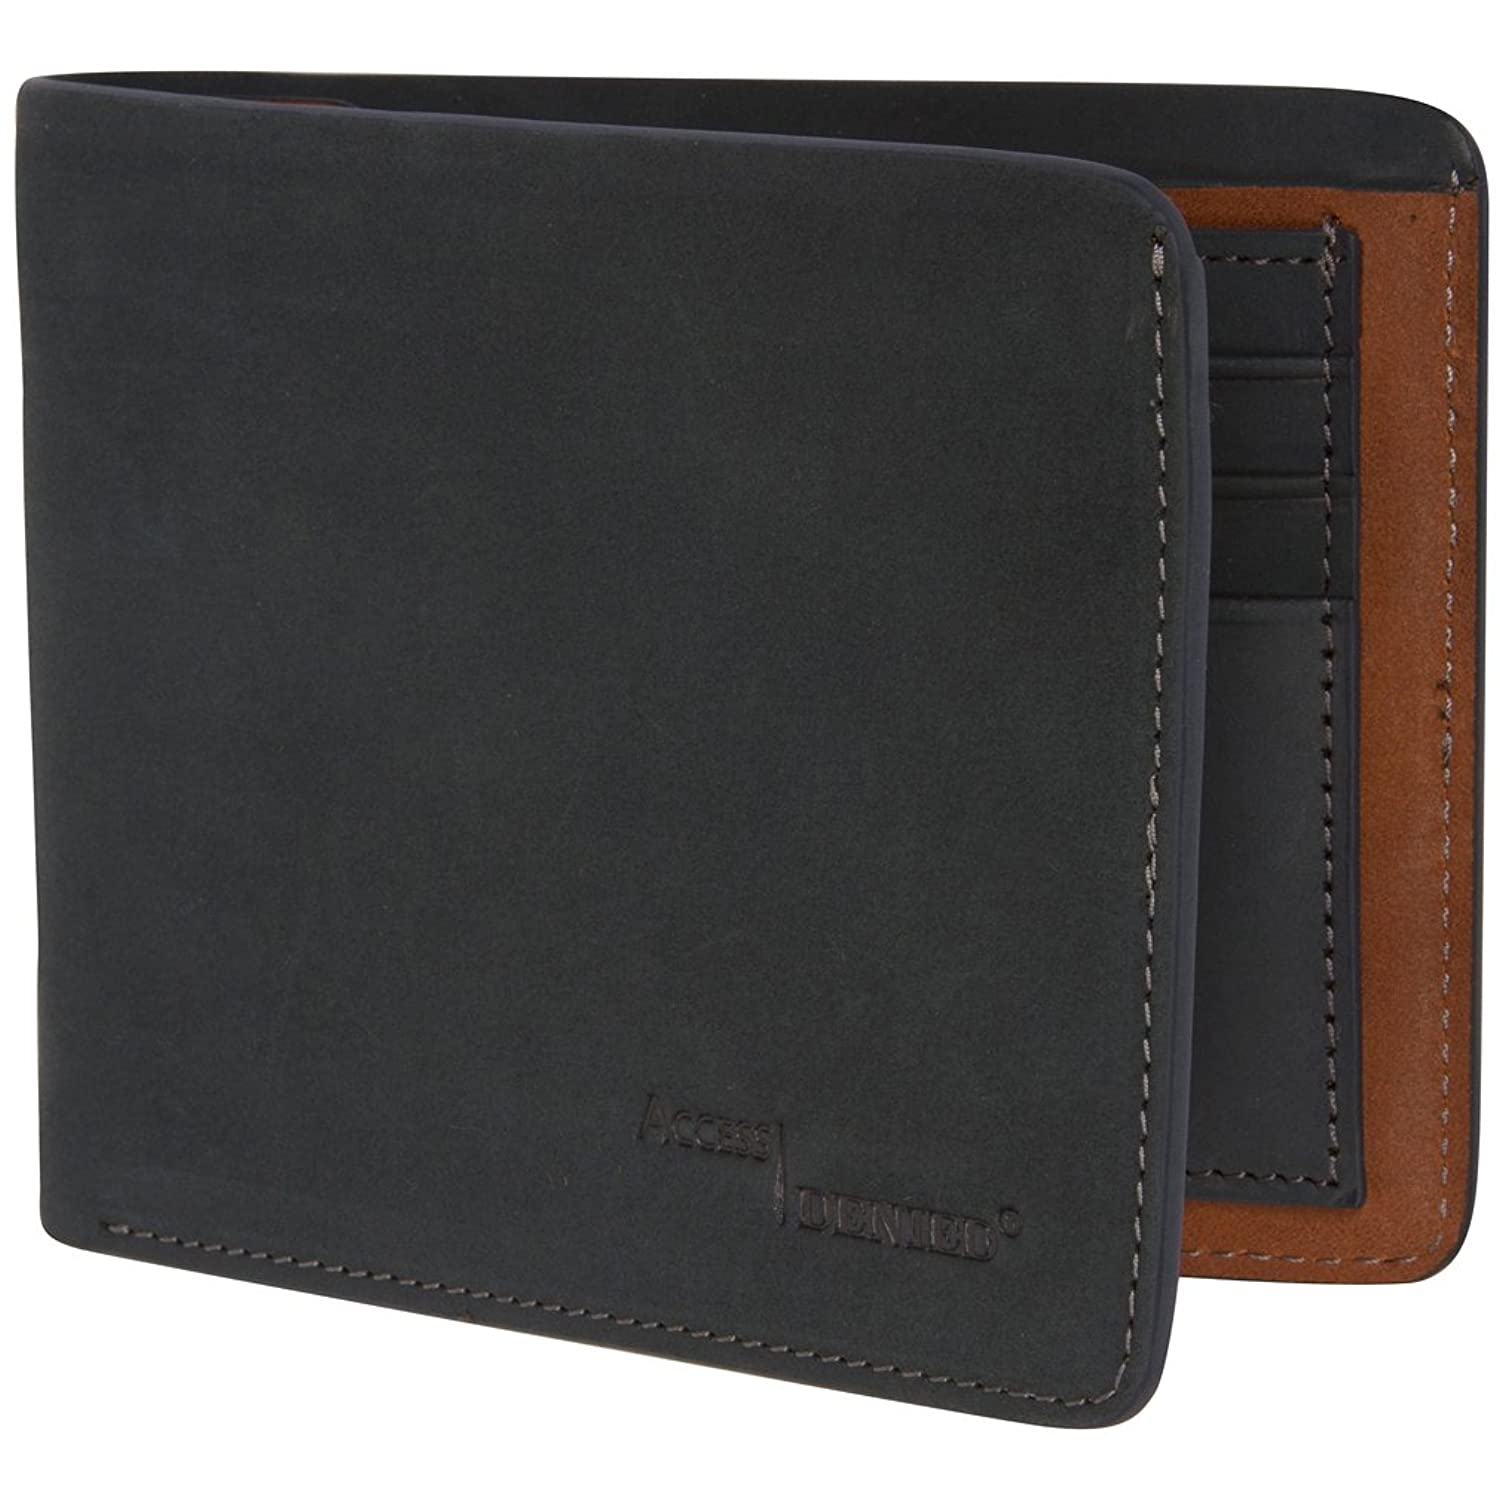 Access Denied Mens RFID Blocking Soft Leather Wallet Slim Two Tone Nubuck